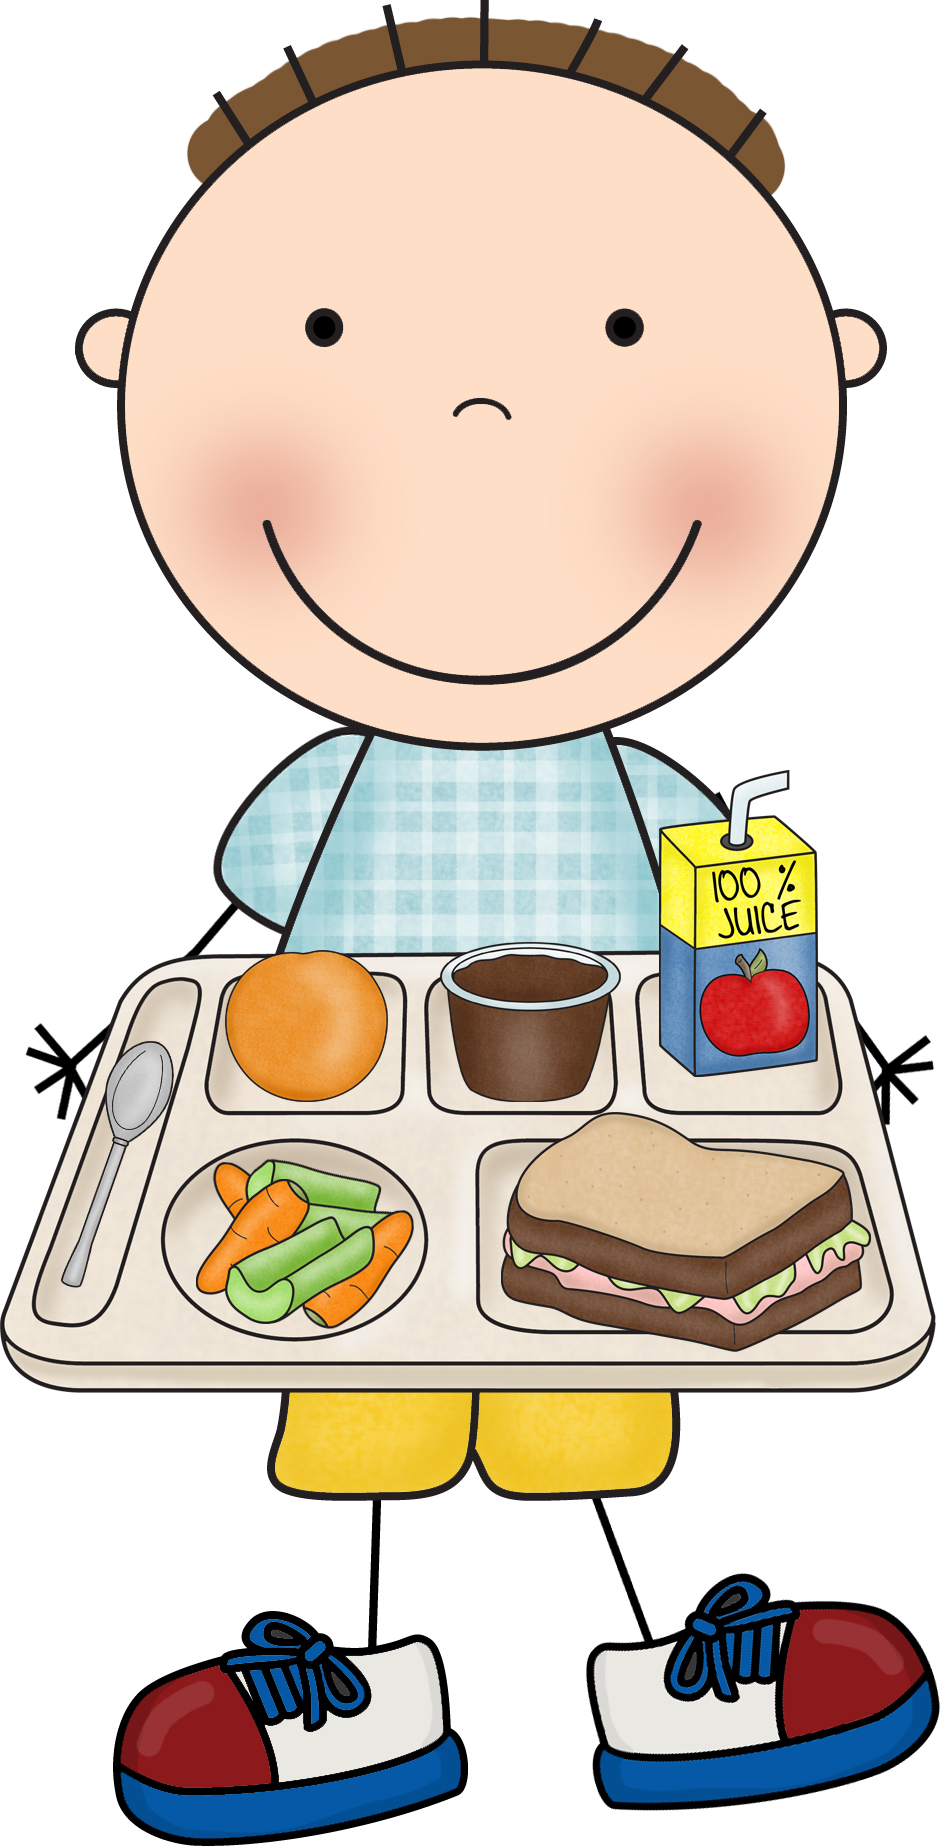 Lunch tray lunch clip art free clipart images 3 2